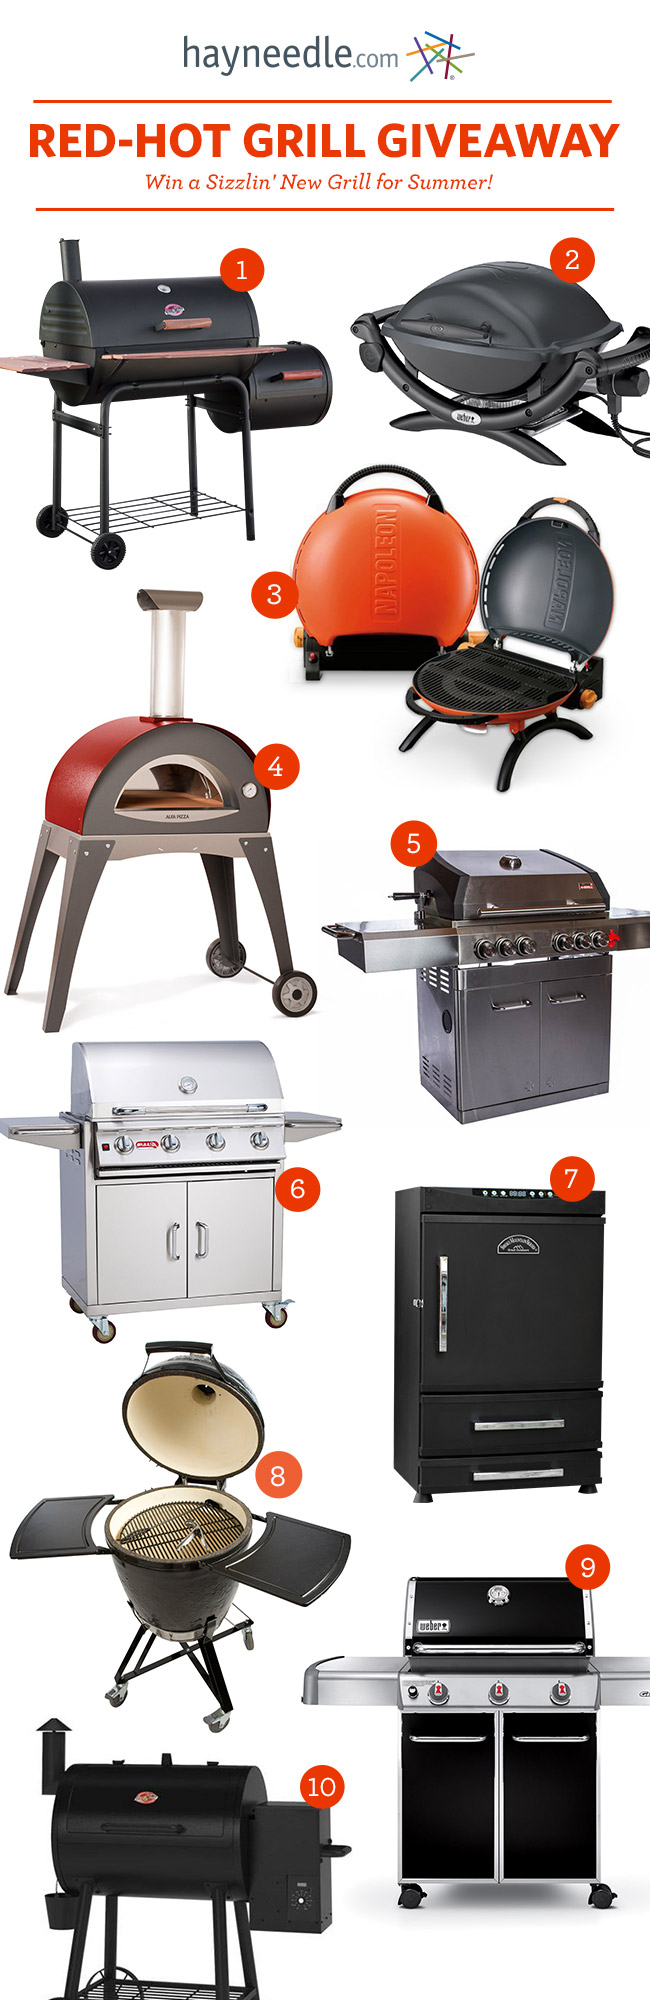 Enter now and one of these coveted outdoor-cooking favorites could soon be yours! #hayneedle #grillgiveaway #summergiveaway